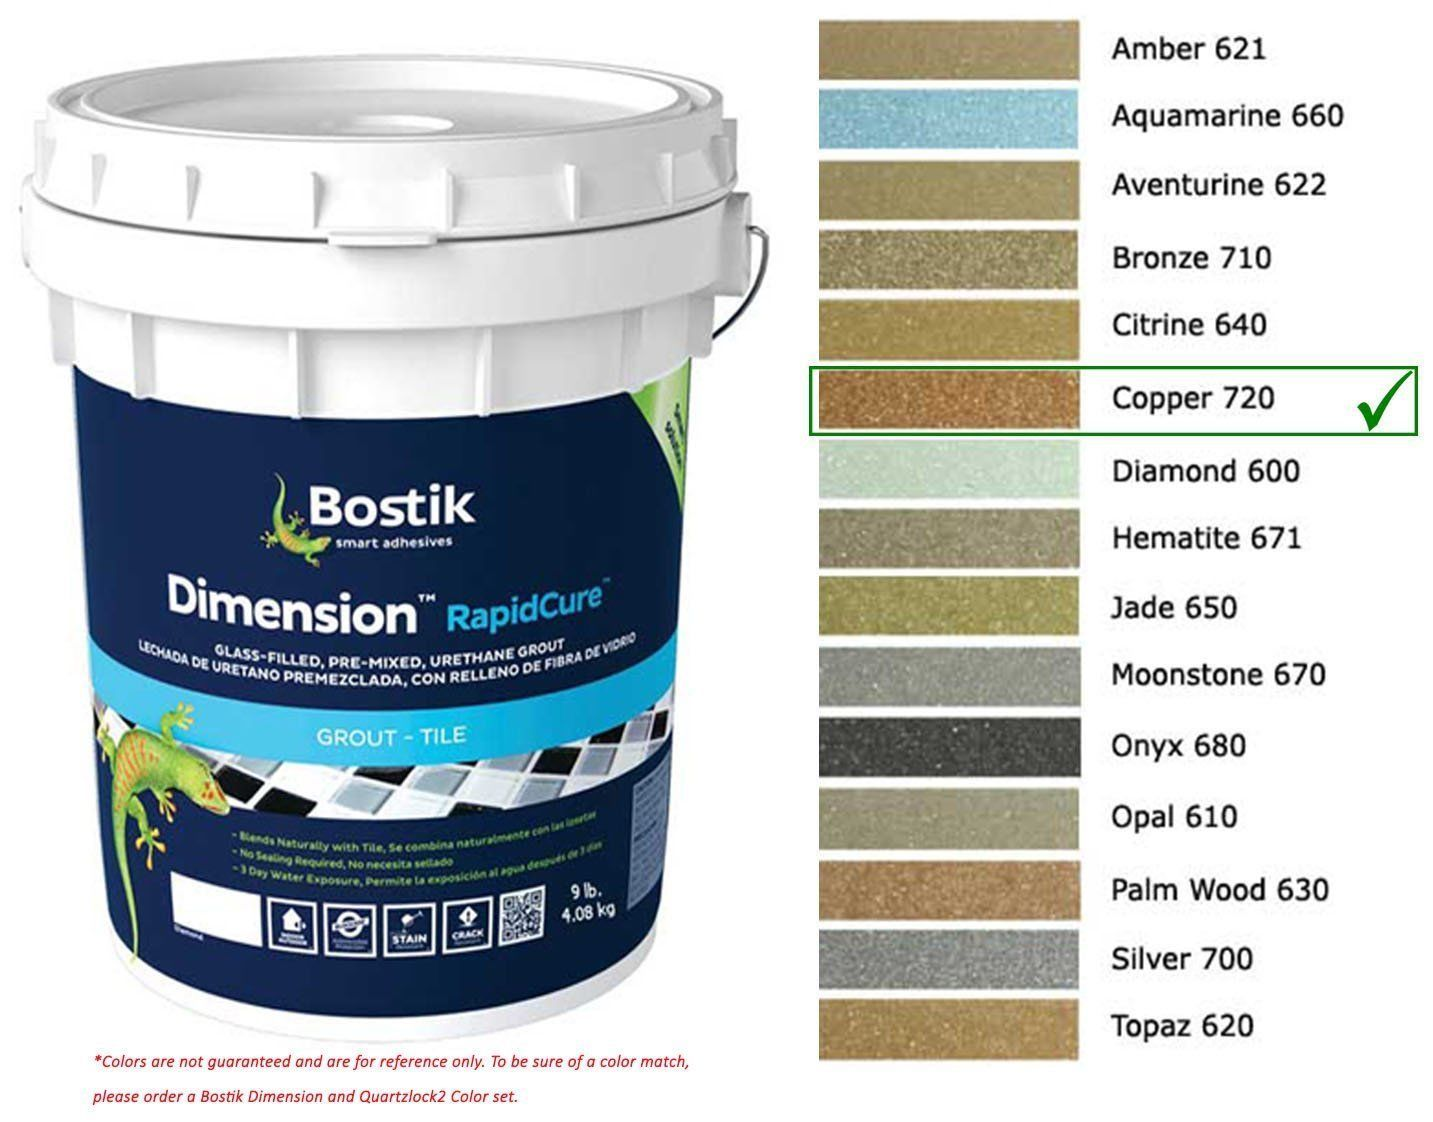 Grout Glue And Substrates 162080 Bostik Dimension Starglass Grout 720 Copper 9 Lbs Buy It Now Only 97 48 On Grout Tile Grout Calcium Carbonate Powder